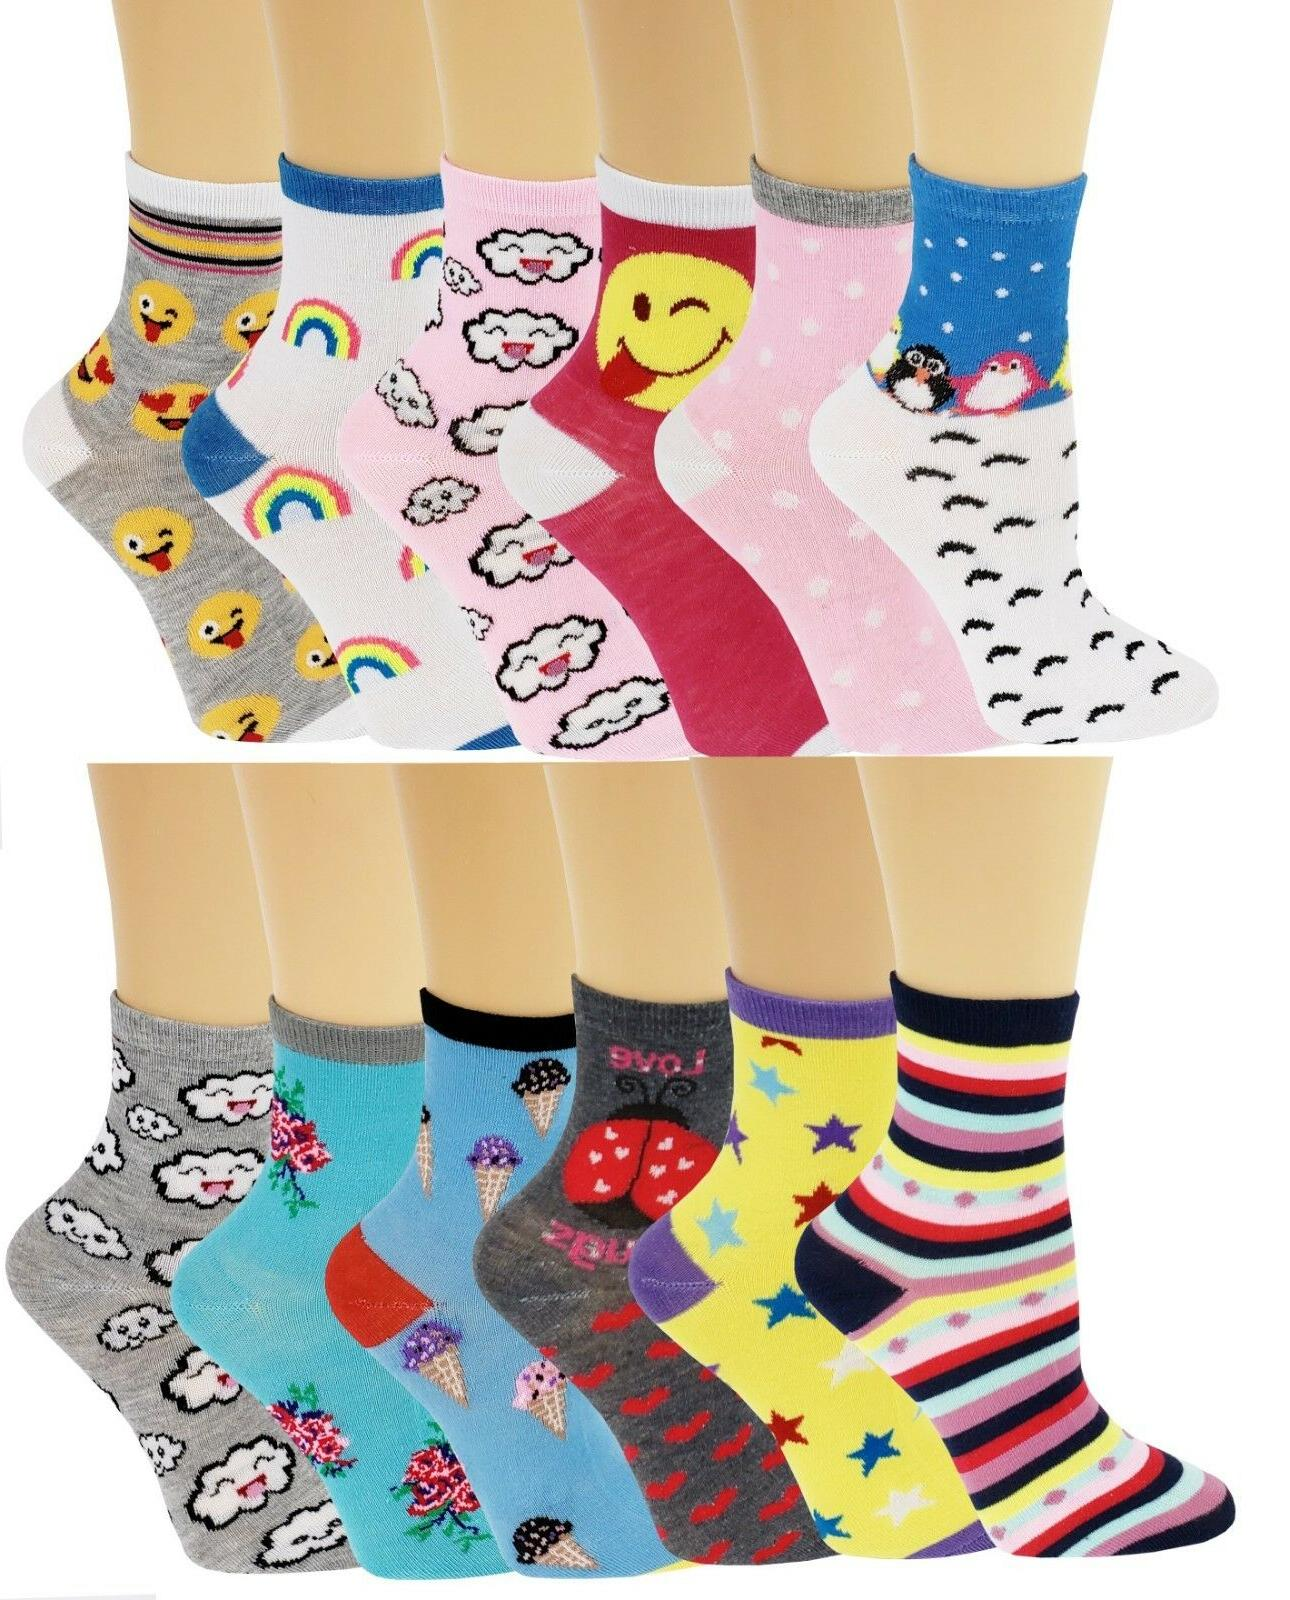 Ayla 12 Pairs Kids Fun Novelty Design Socks